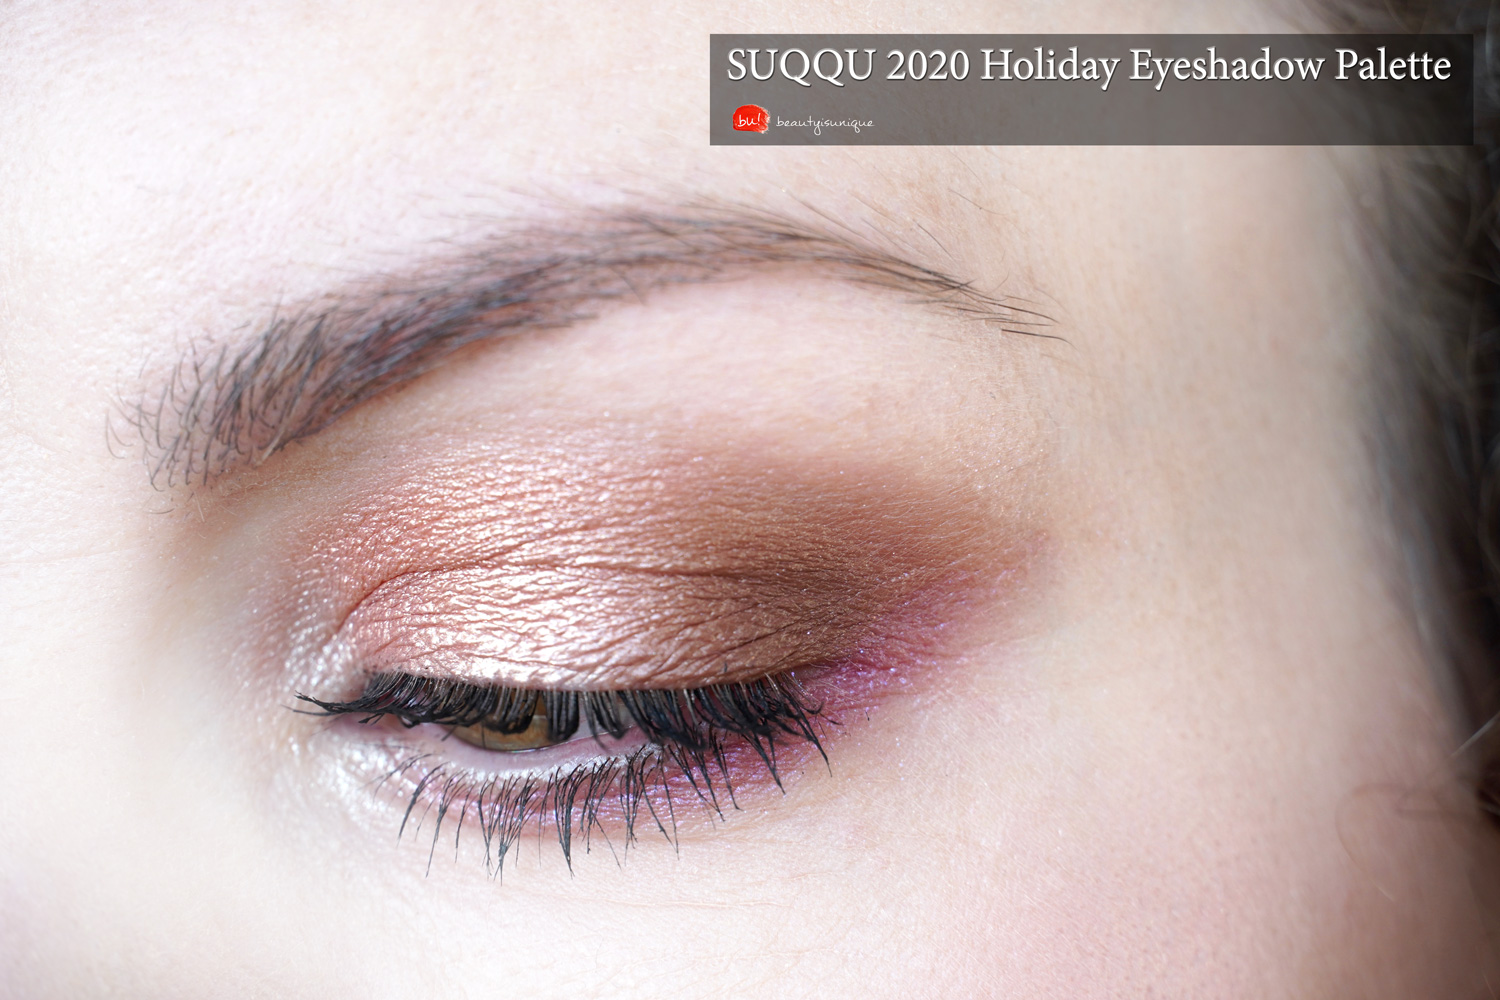 suqqu-2020-holiday-eyeshadow-palette